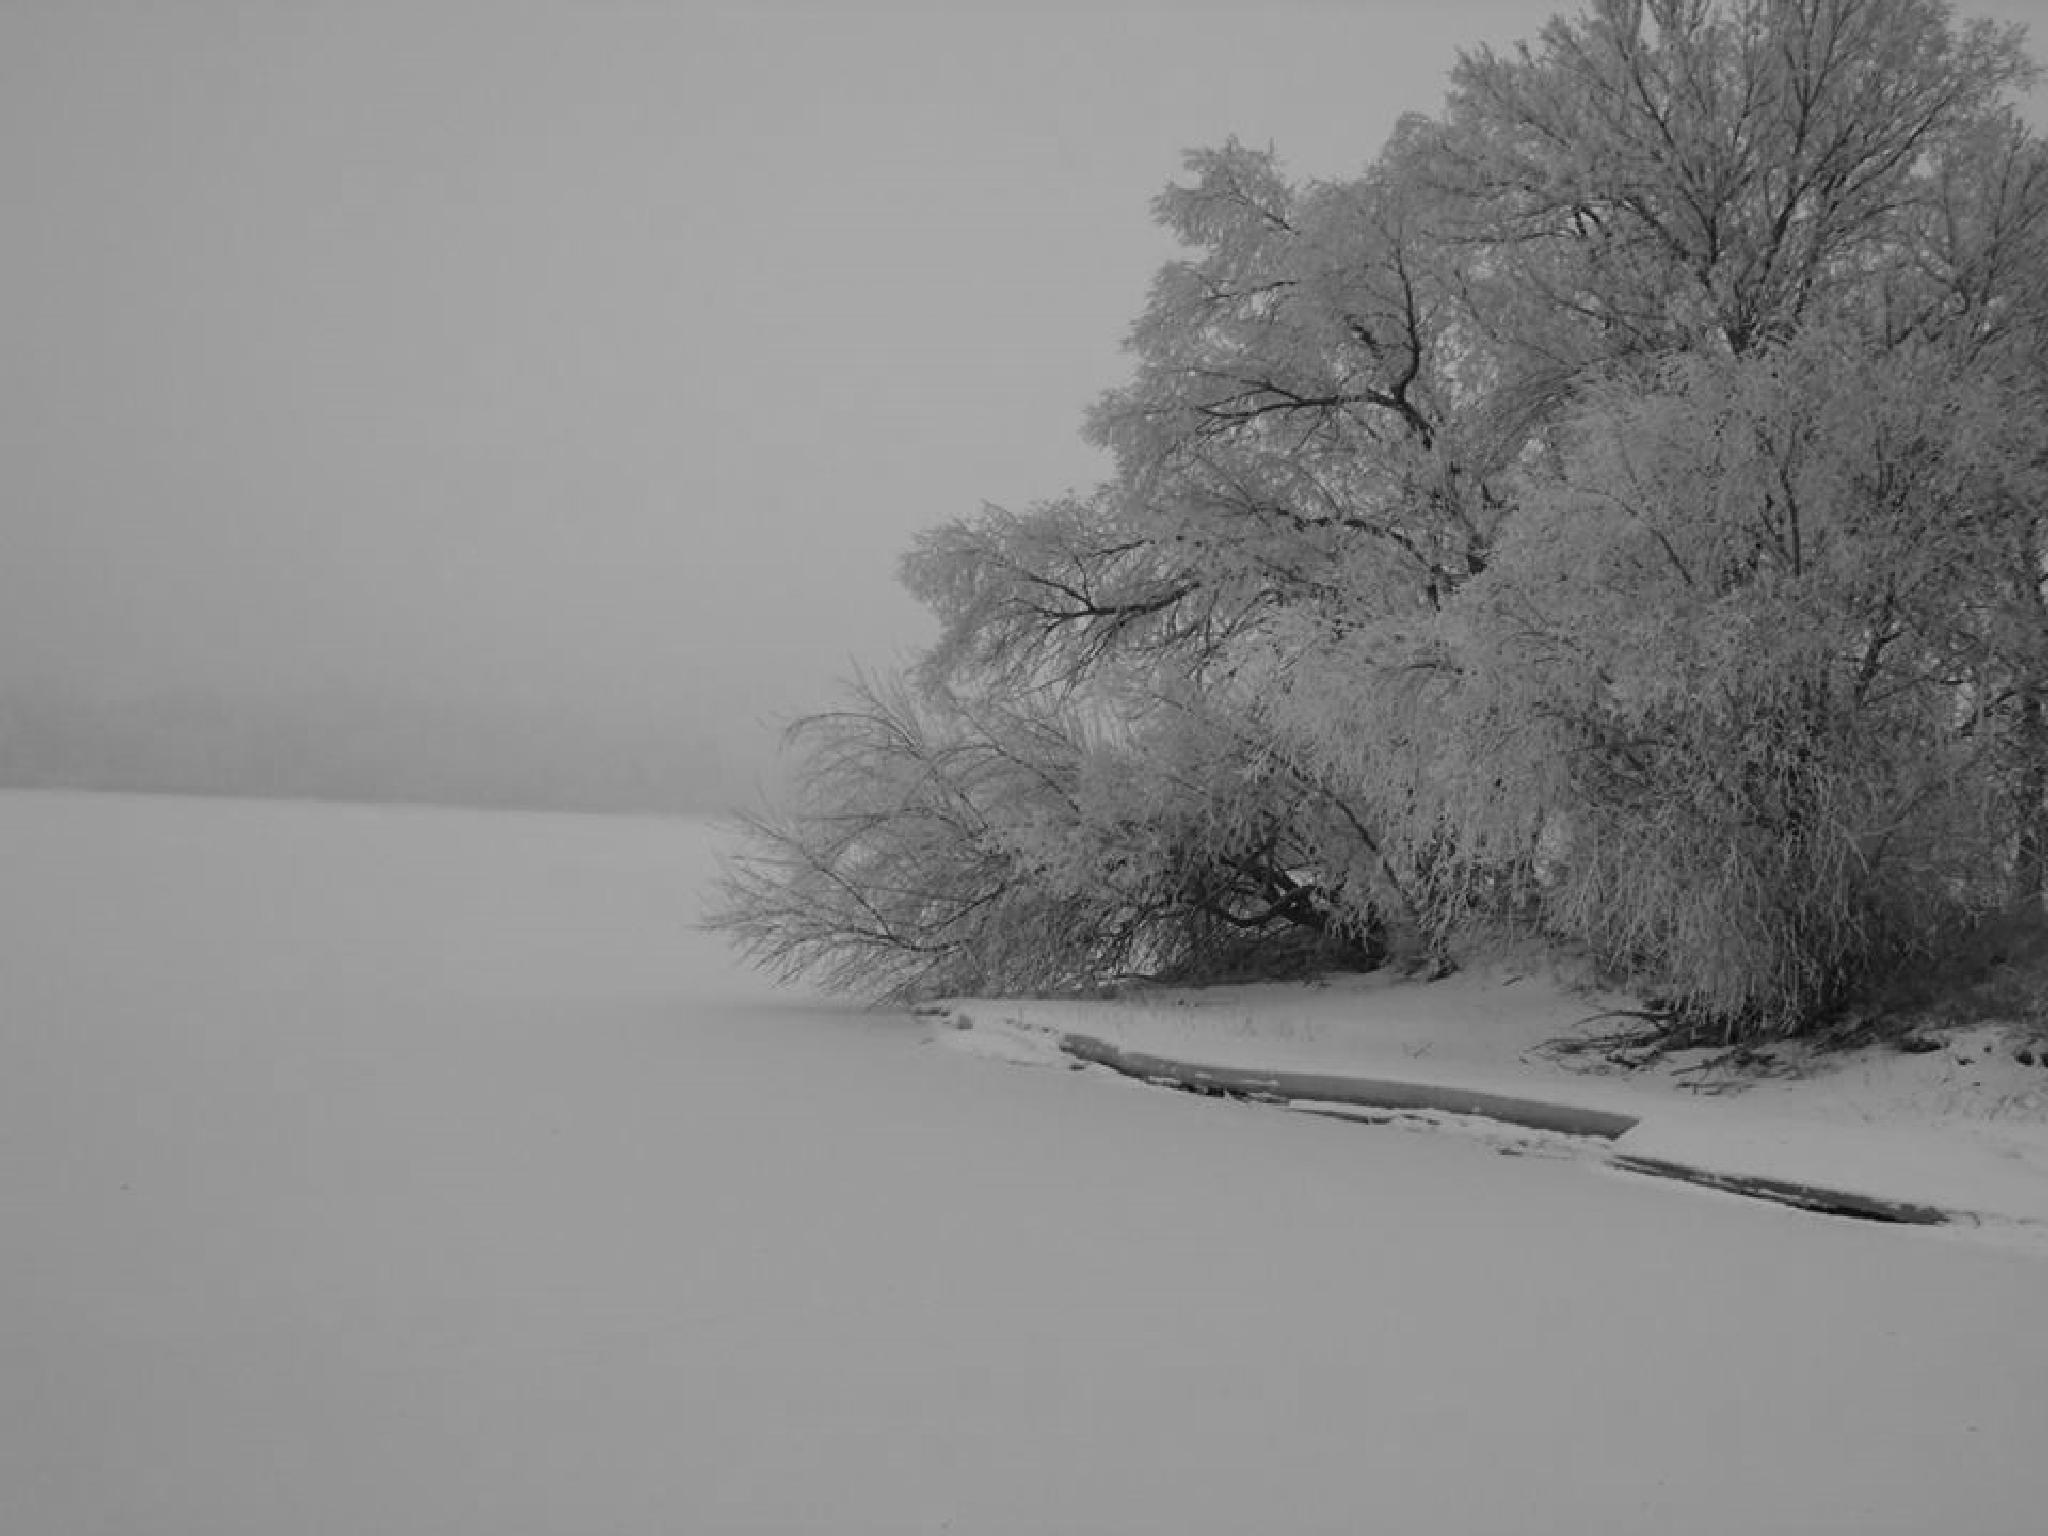 Frozen Lake in Black and White by sueherdt